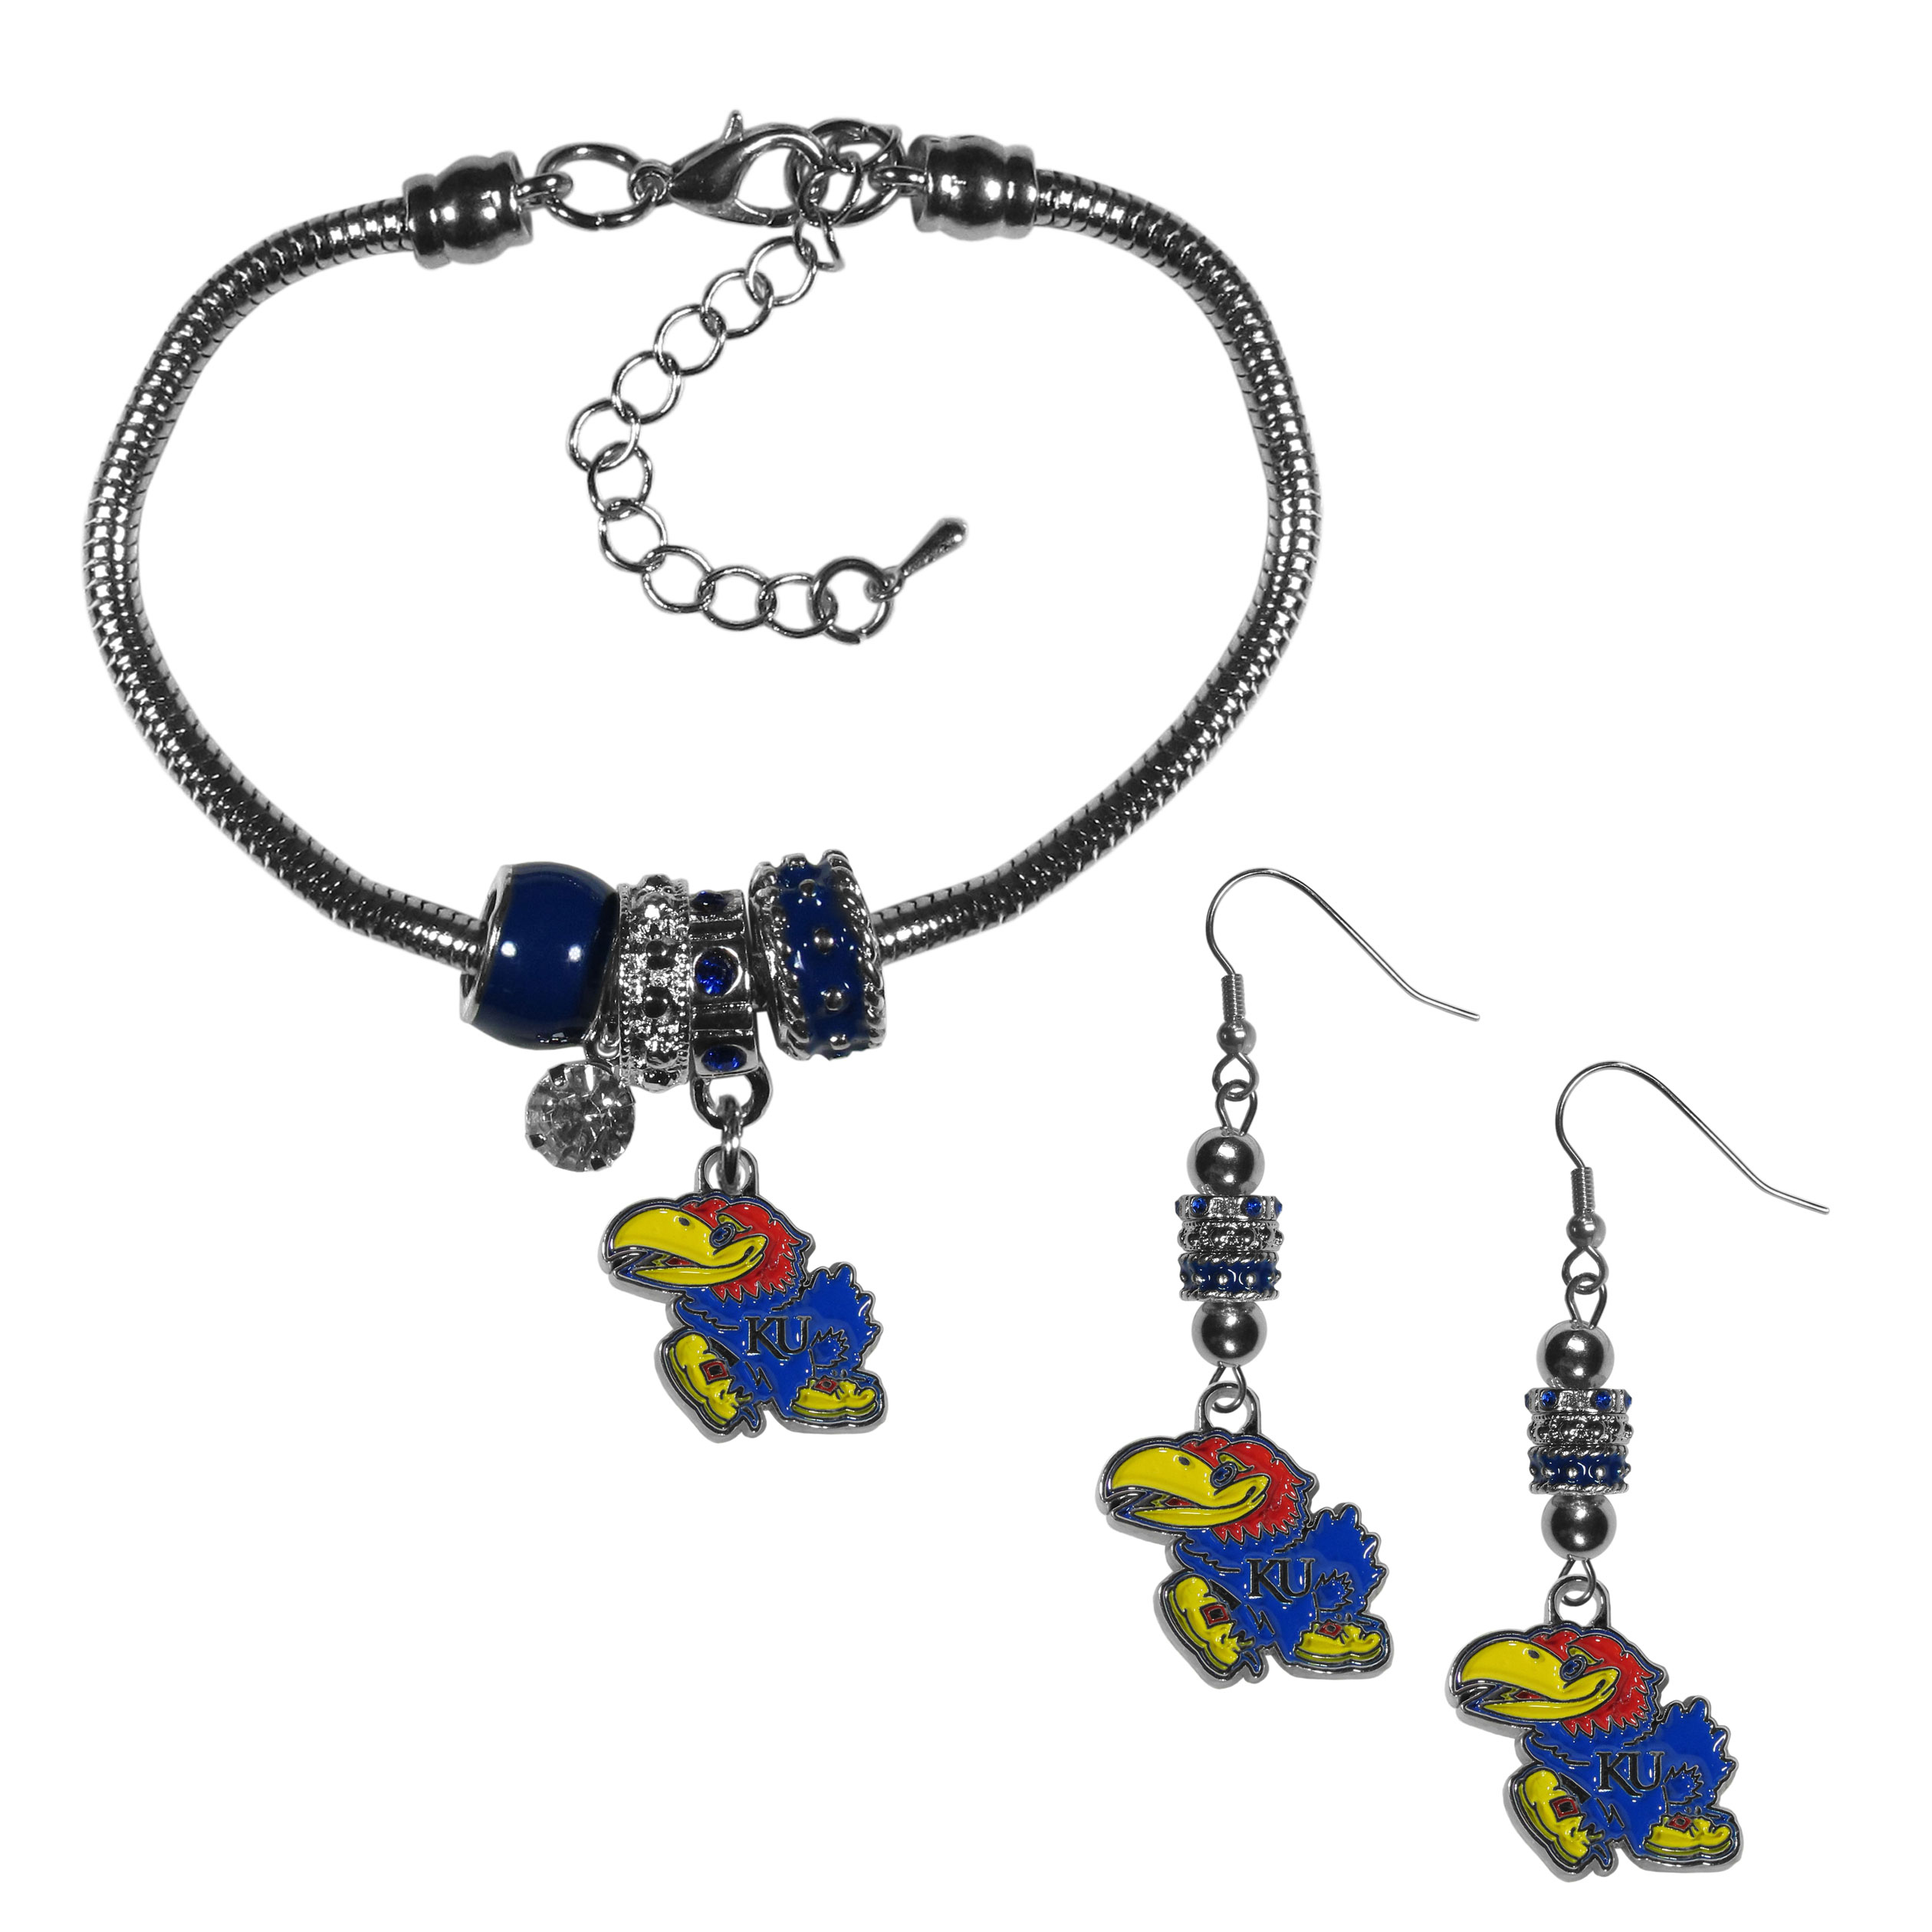 Kansas Jayhawks Euro Bead Earrings and Bracelet Set - We combine the popular Euro bead style with your love of the Kansas Jayhawks with this beautiful jewelry set that includes earrings and a matching bracelet. The stylish earrings feature hypoallergenic, nickel free fishhook posts and 3 team colored Euro beads and a metal team charm. The matching snake chain bracelet is 7.5 inches long with a 2 inch extender and 4 Euro beads with a rhinestone charm and team charm.